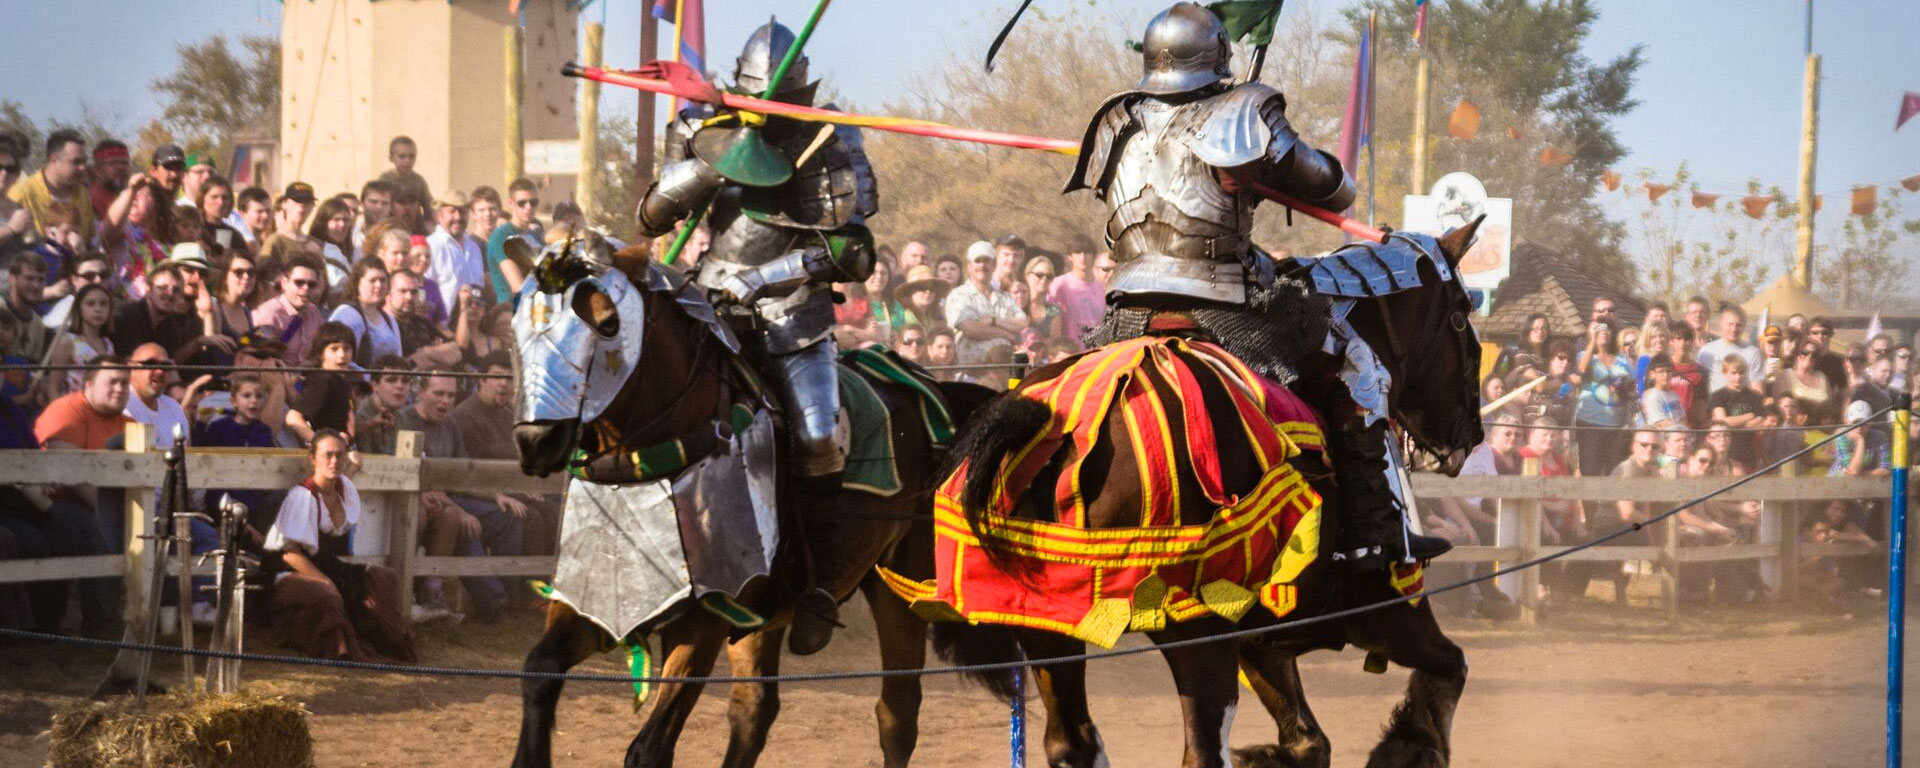 Welcome to the world of the Original Renaissance Pleasure Faire, the Bristol Renaissance Faire, and the New York Renaissance Faire. Where Fantasy Rules!